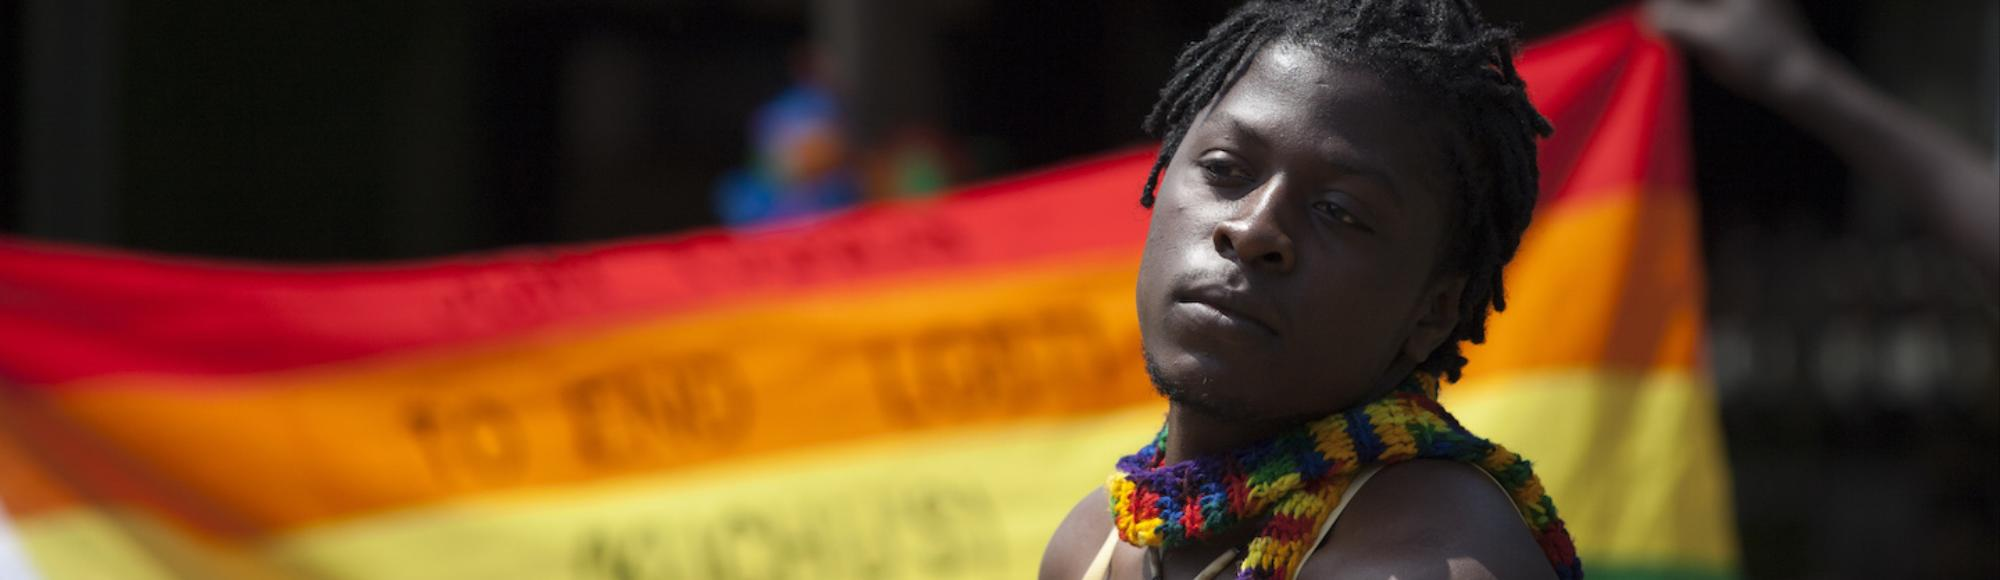 Uganda's 'Kill the Gays' Bill Could Be Back Soon